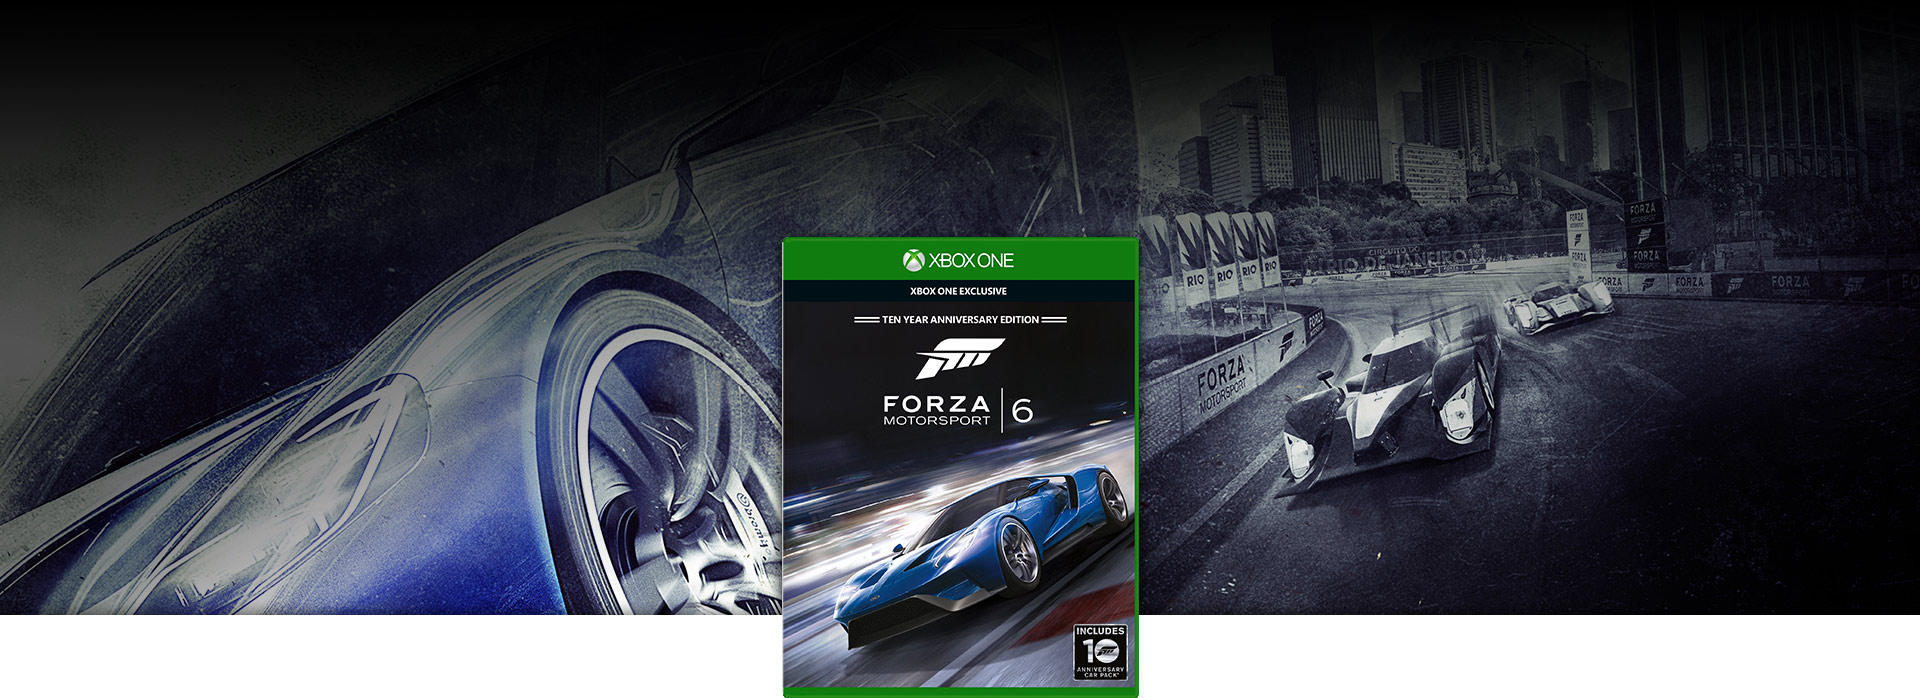 Forza 6-coverbillede